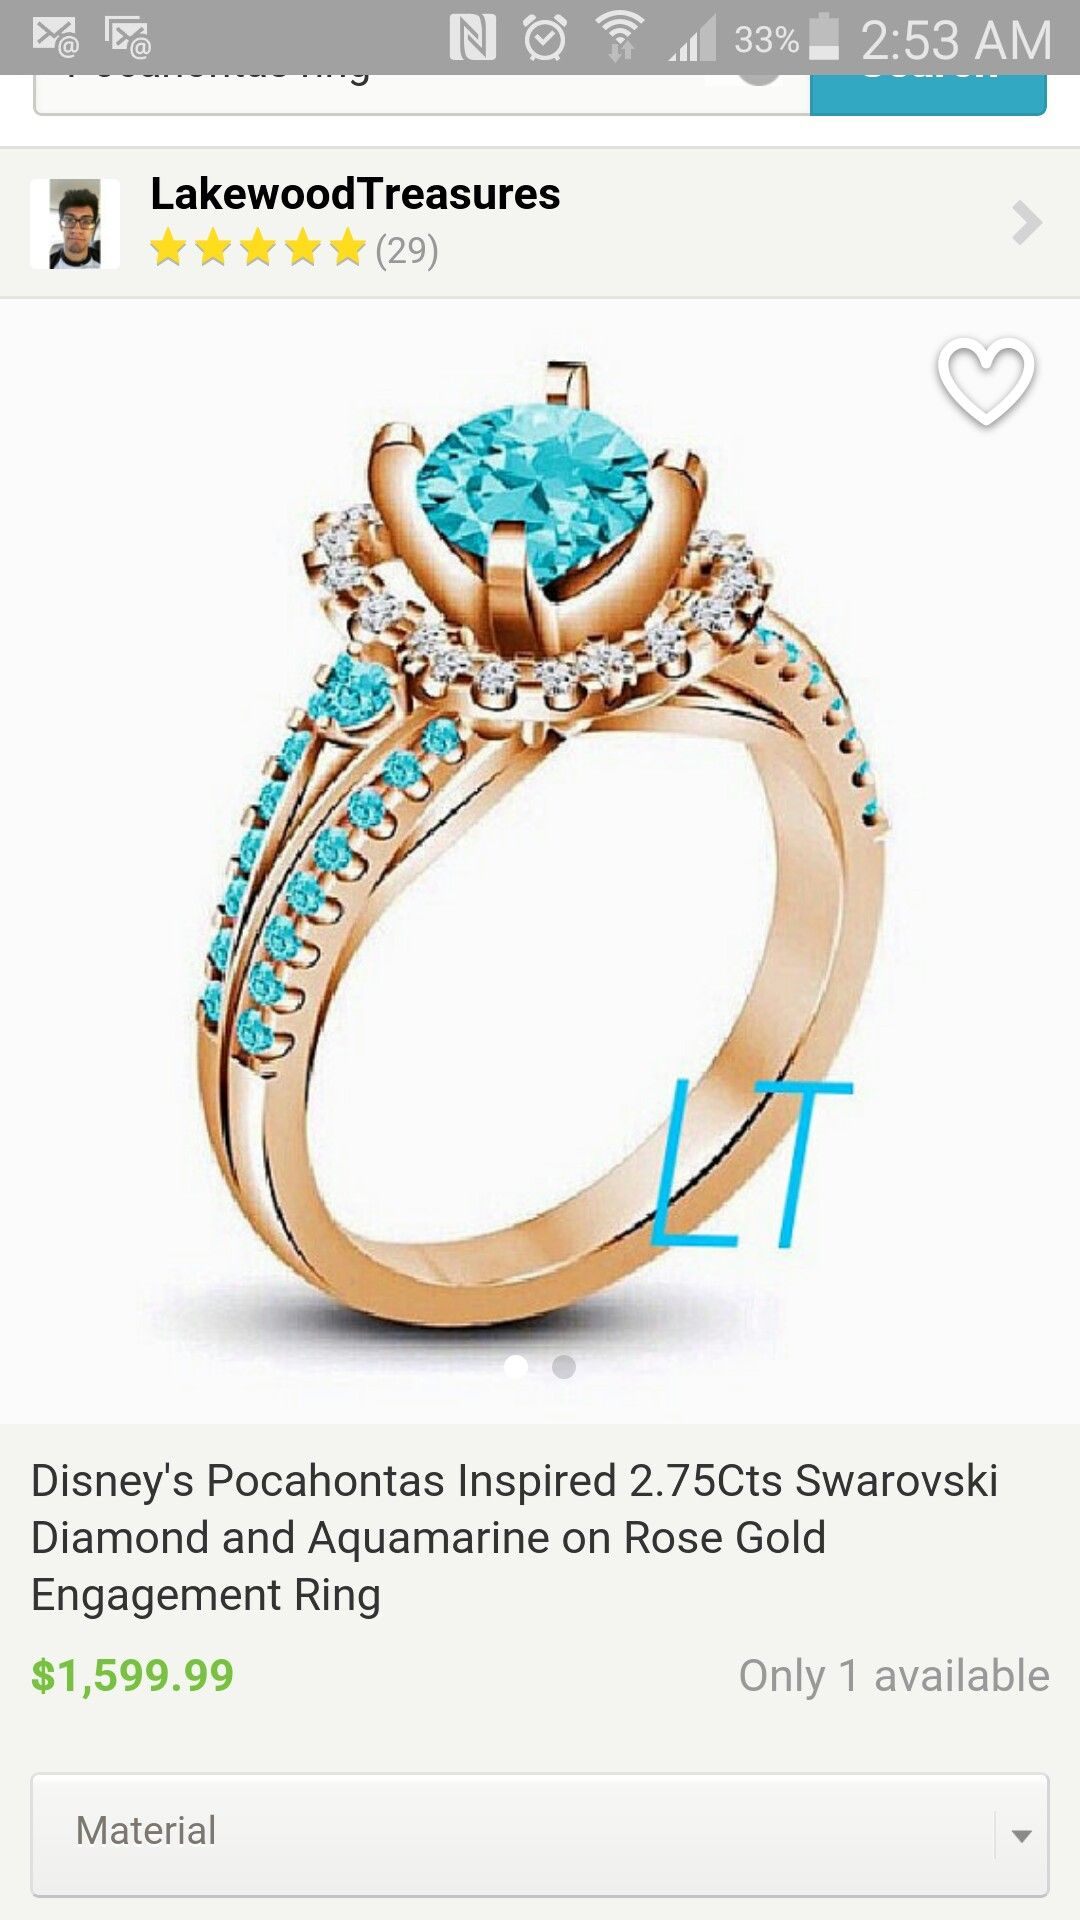 Wow this engagment ring. I love it.